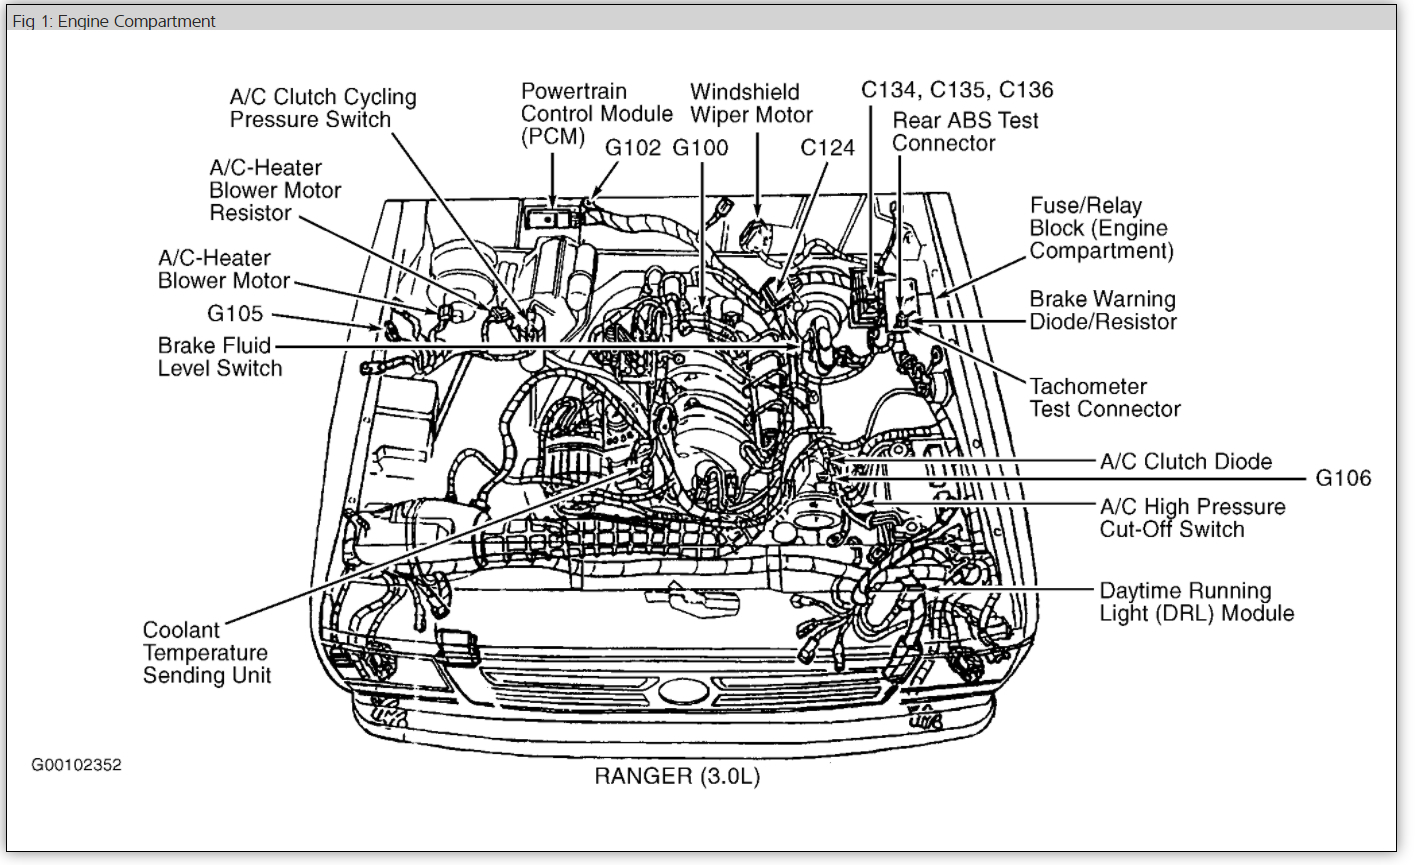 WHERE IS THE IGNITION MODULE?: Online Manuals Show the